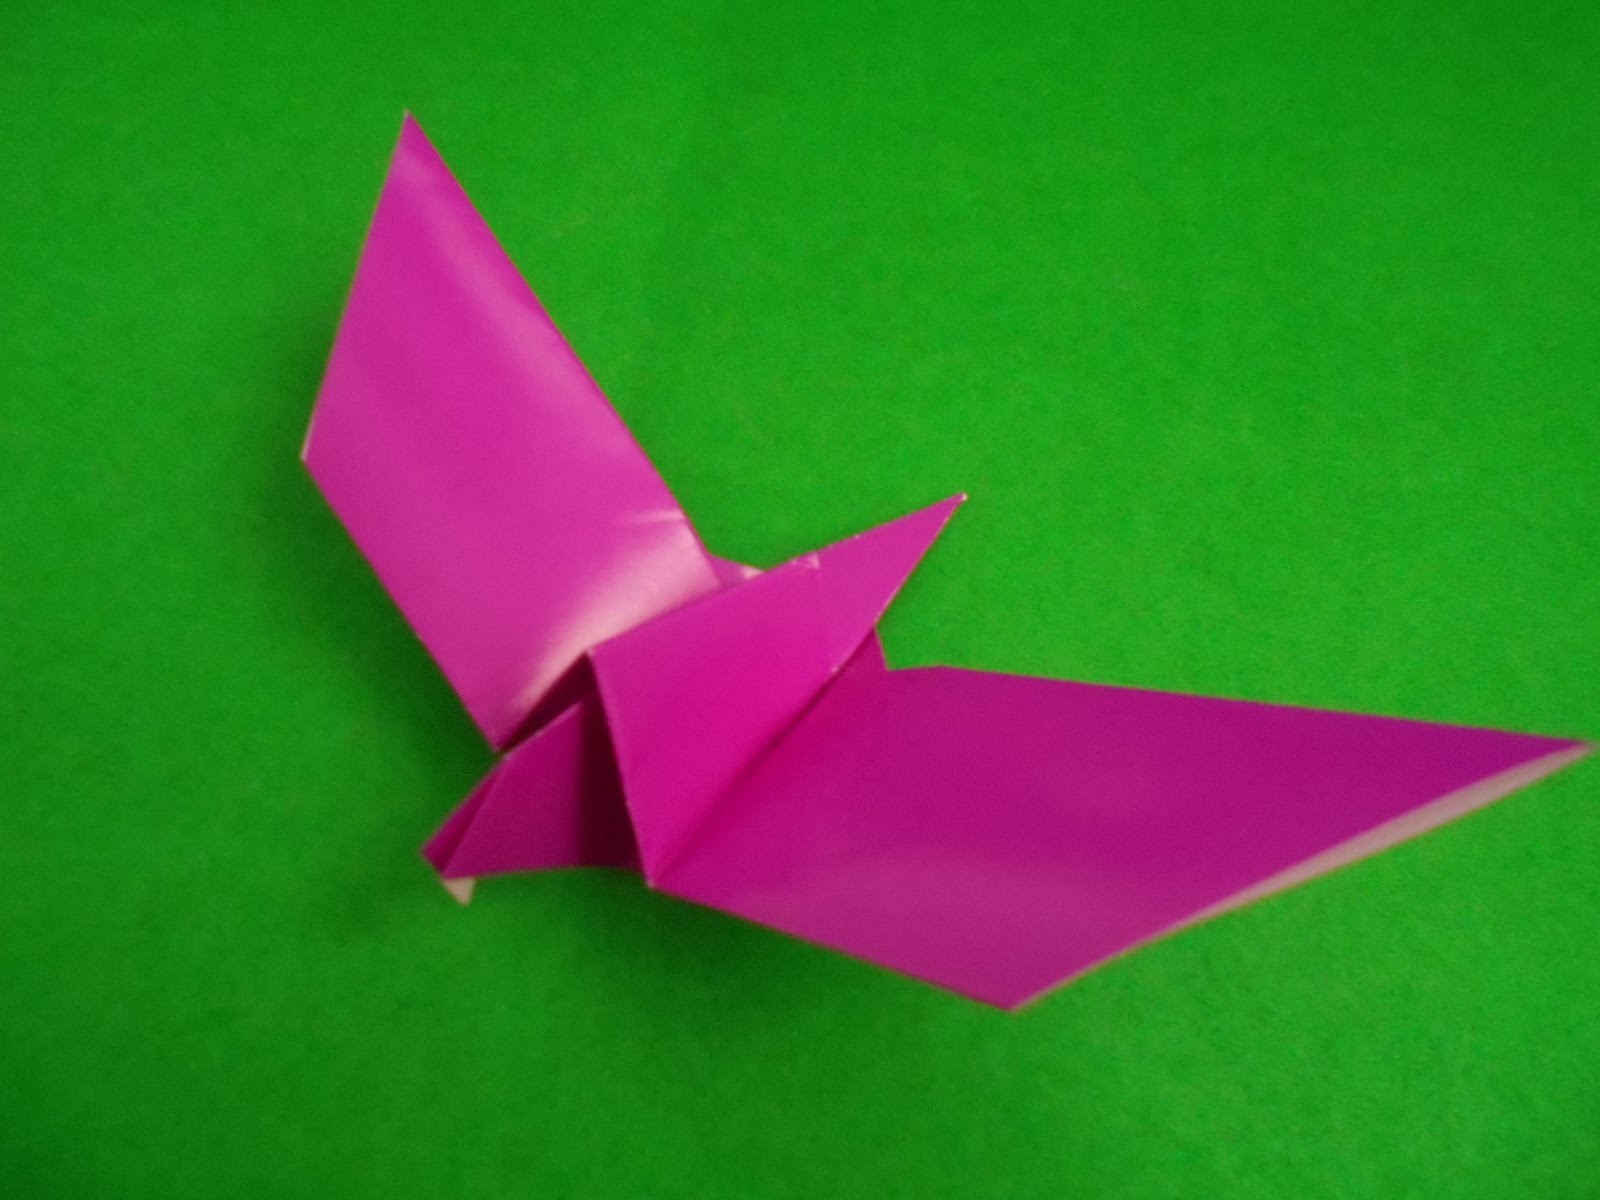 How To Make Origami Animals | Easy Origami Seagull | Origami Bird